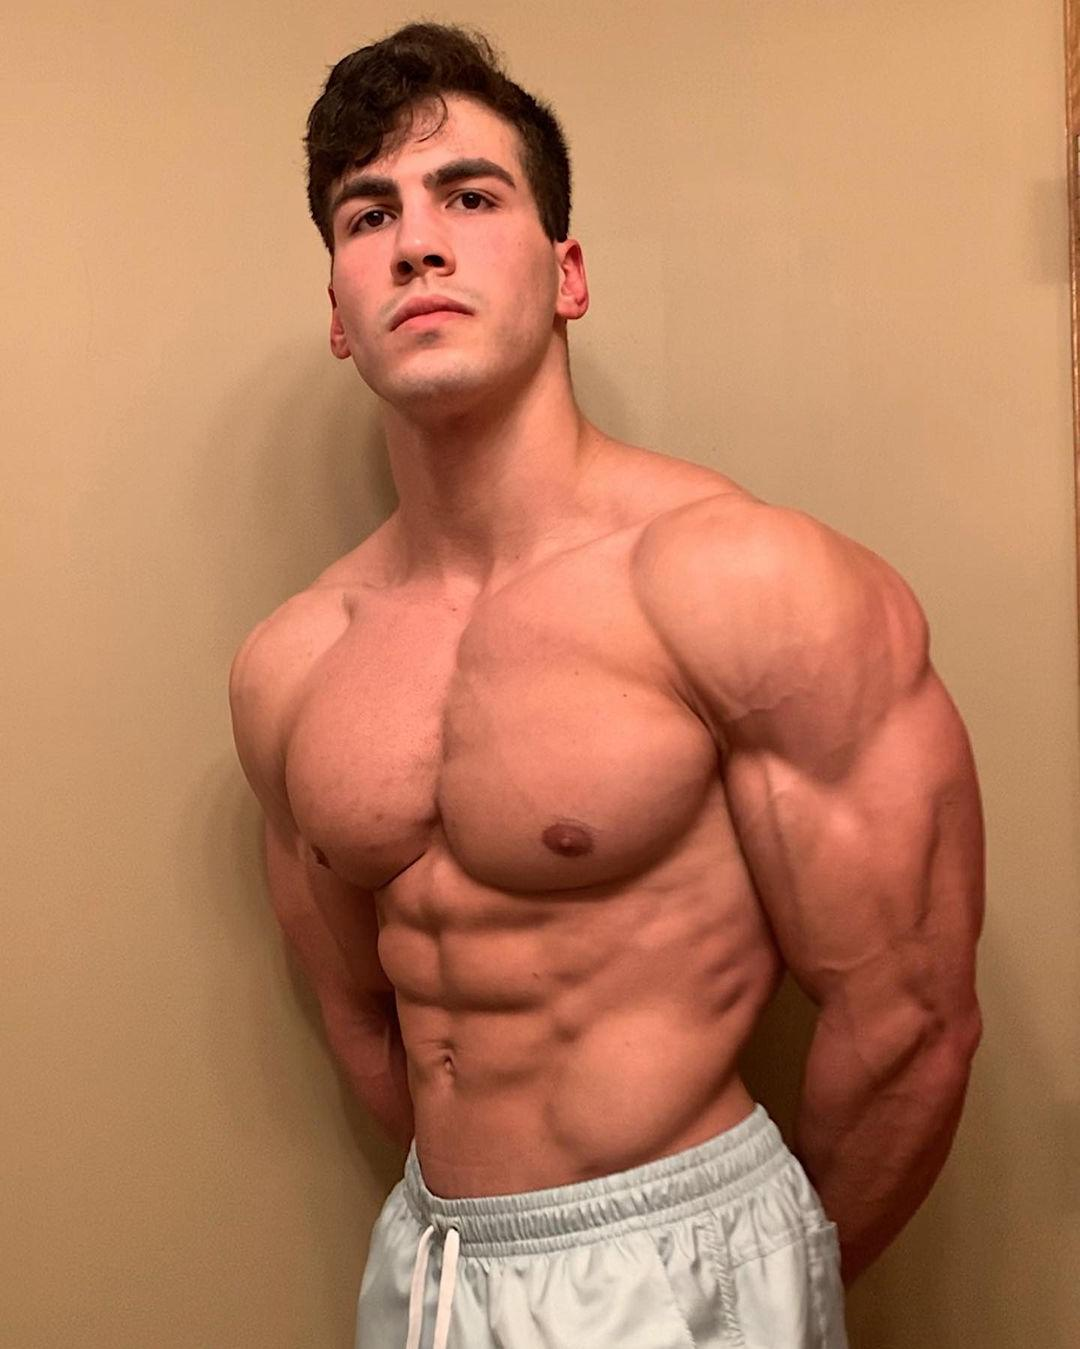 beautiful-fit-shirtless-guys-logan-foote-sexy-muscular-male-body-young-college-hunk